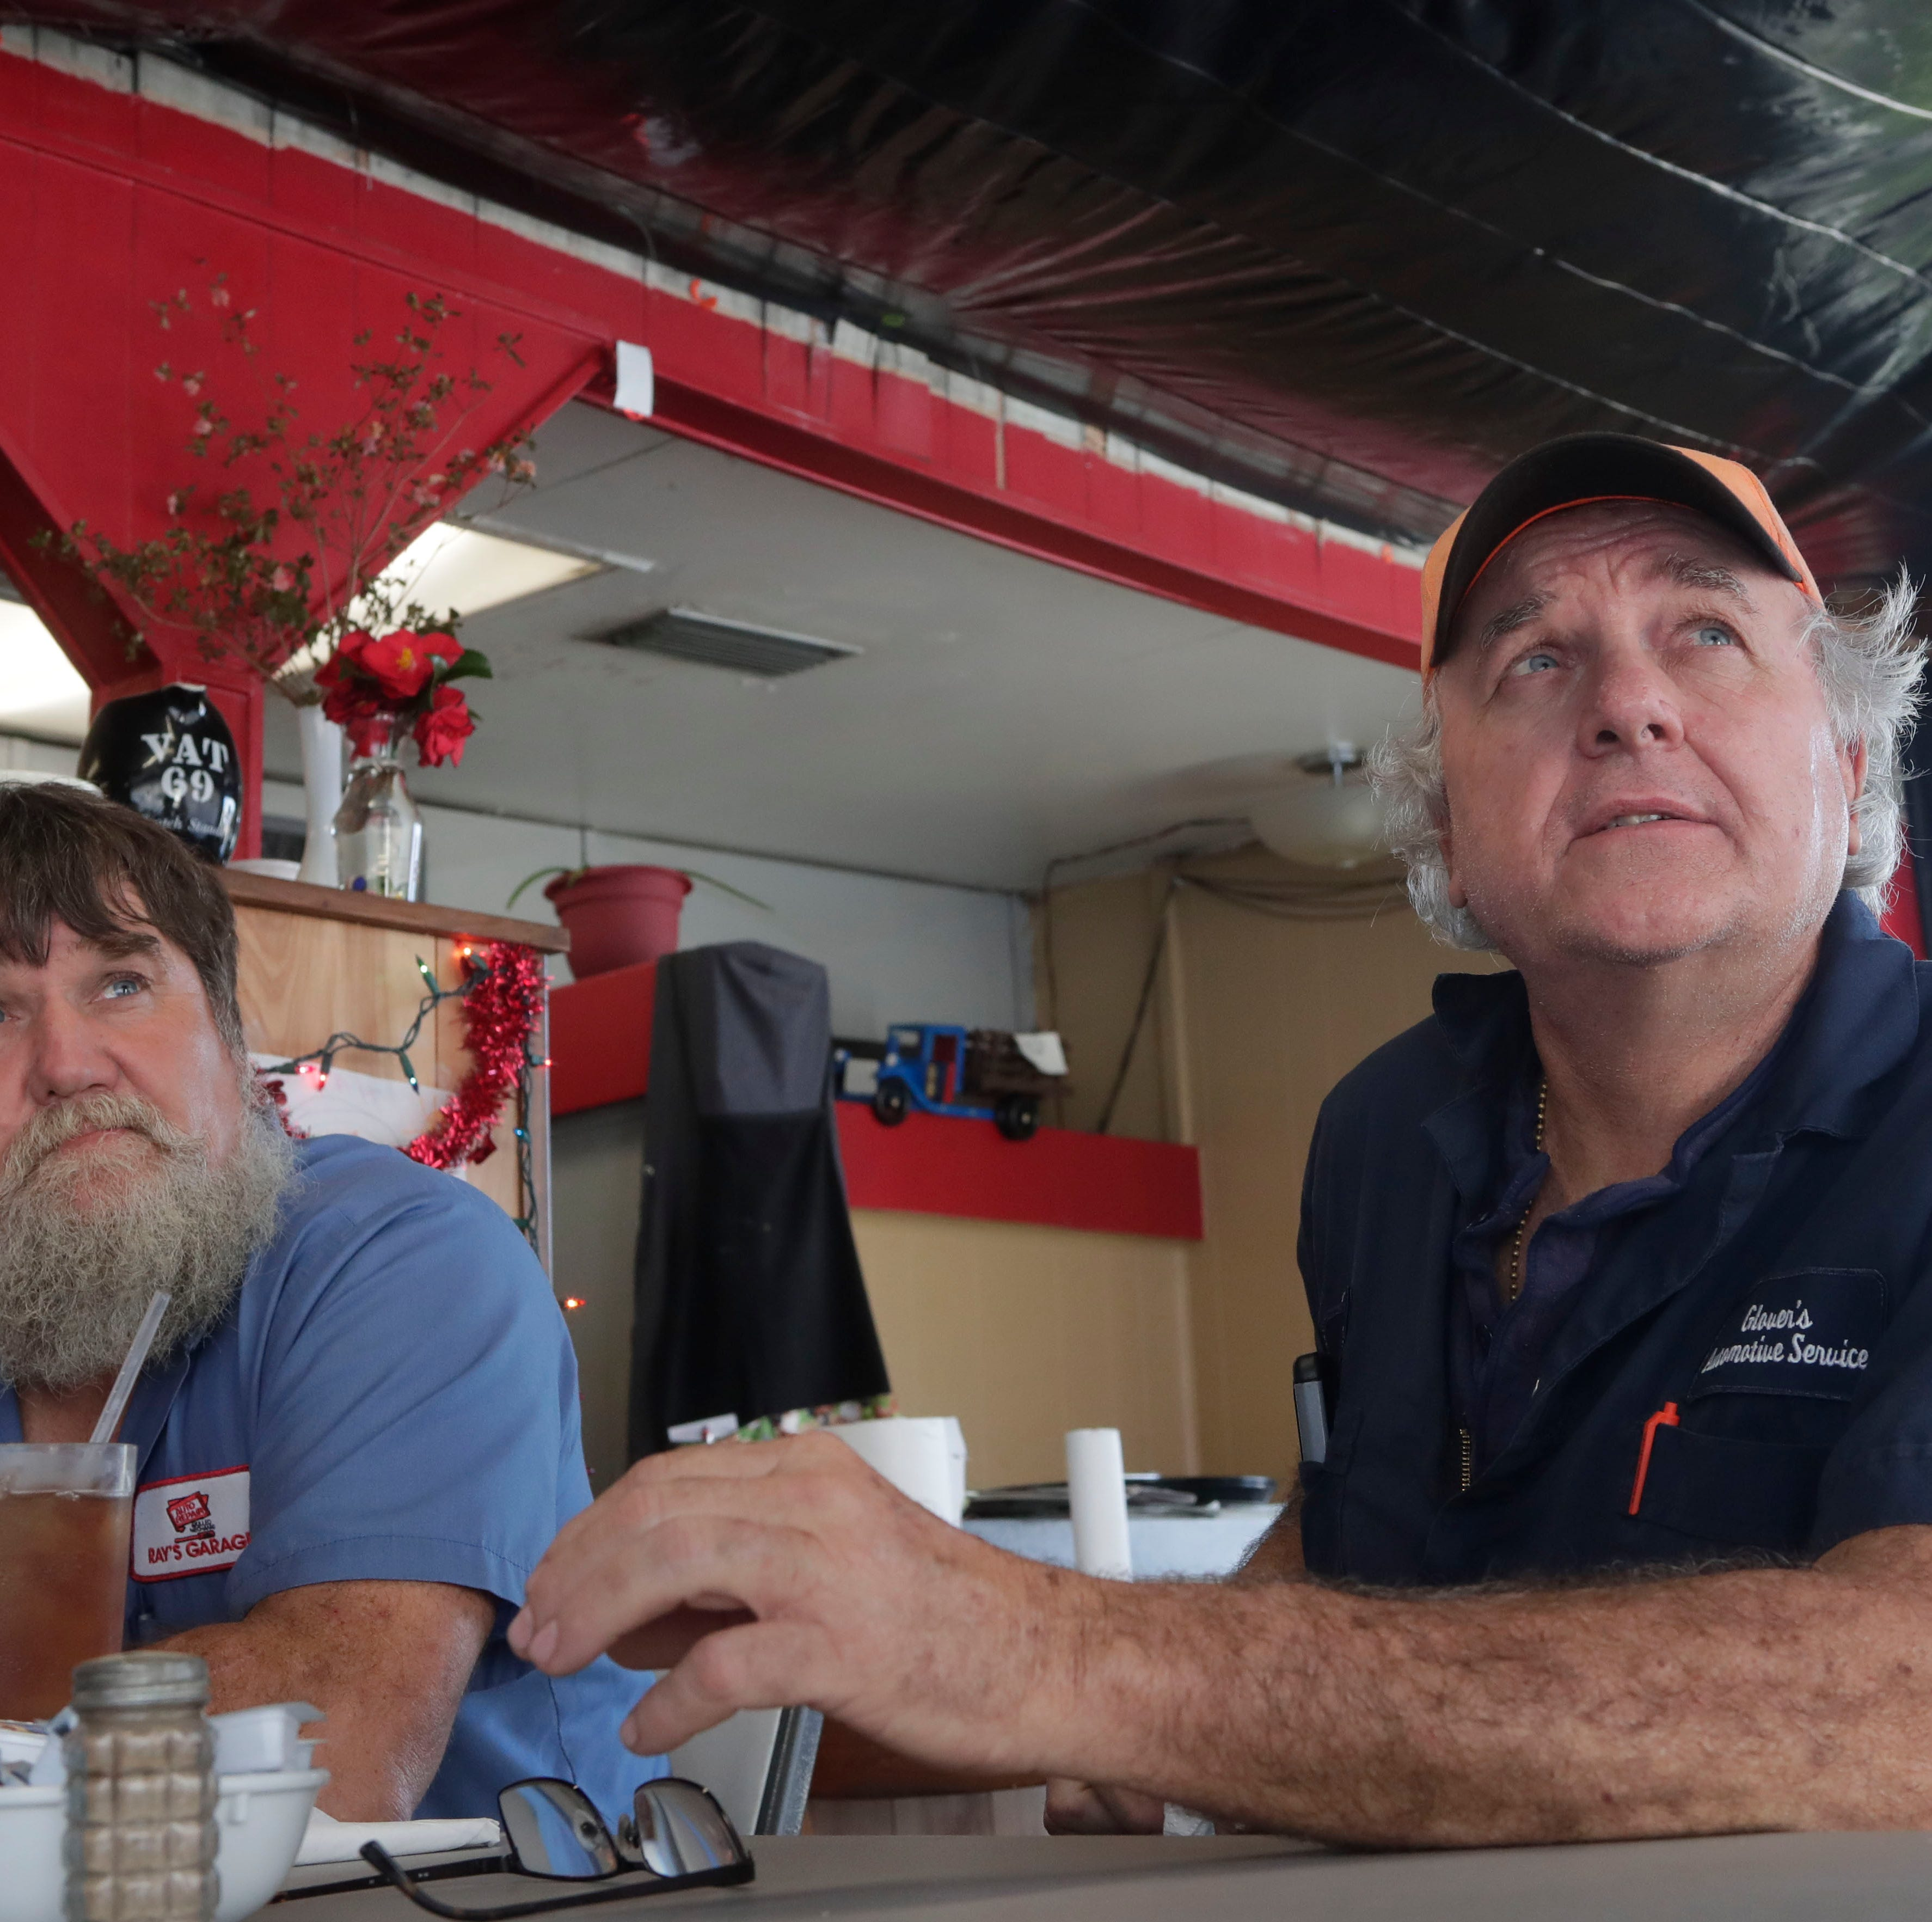 DESPAIR AMID DEBRIS: Jackson County on a years-long road to recovery after Hurricane Michael